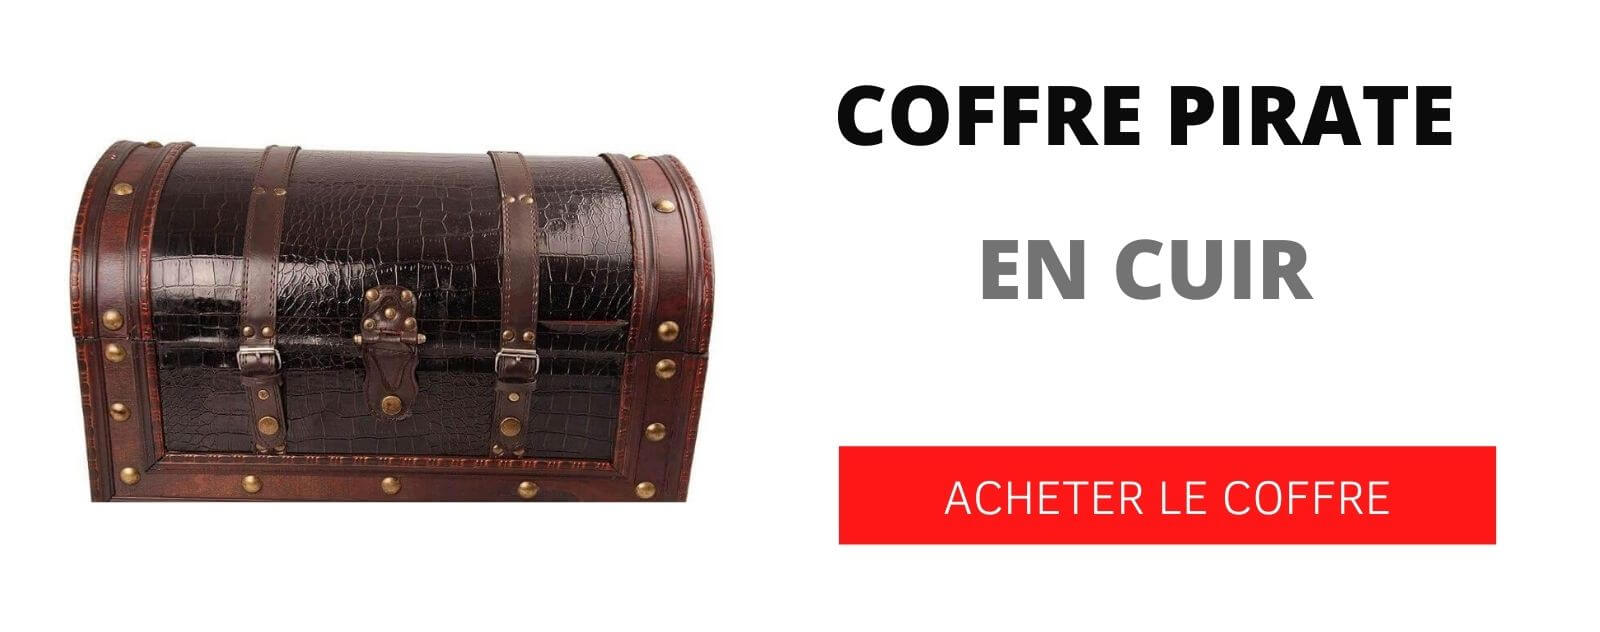 COFFRE-pirate-en-cuir